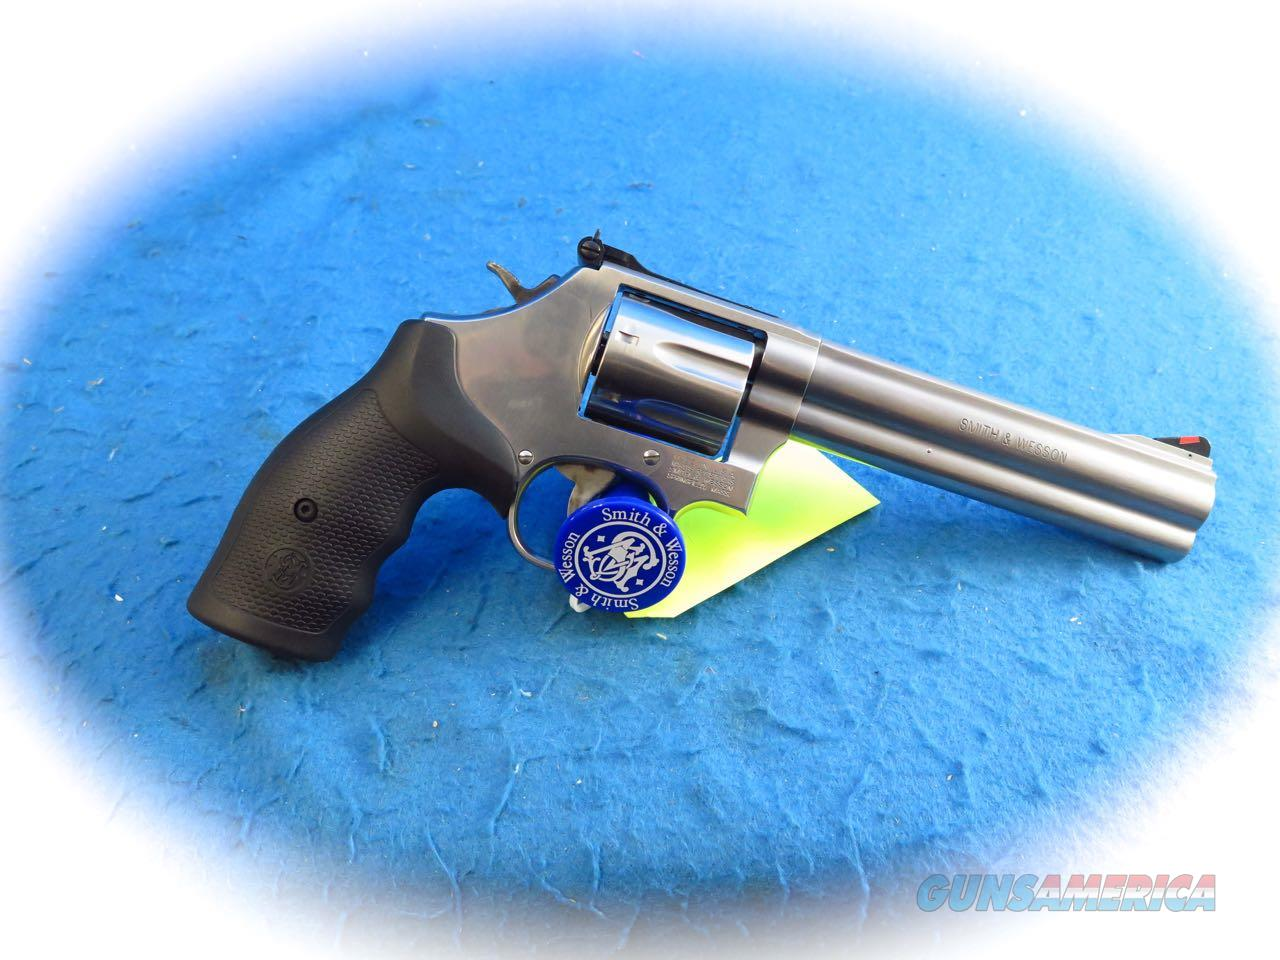 Smith & Wesson Model 686 Plus .357 Mag 7 Shot Revolver SS SKU 164198 **New**  Guns > Pistols > Smith & Wesson Revolvers > Med. Frame ( K/L )